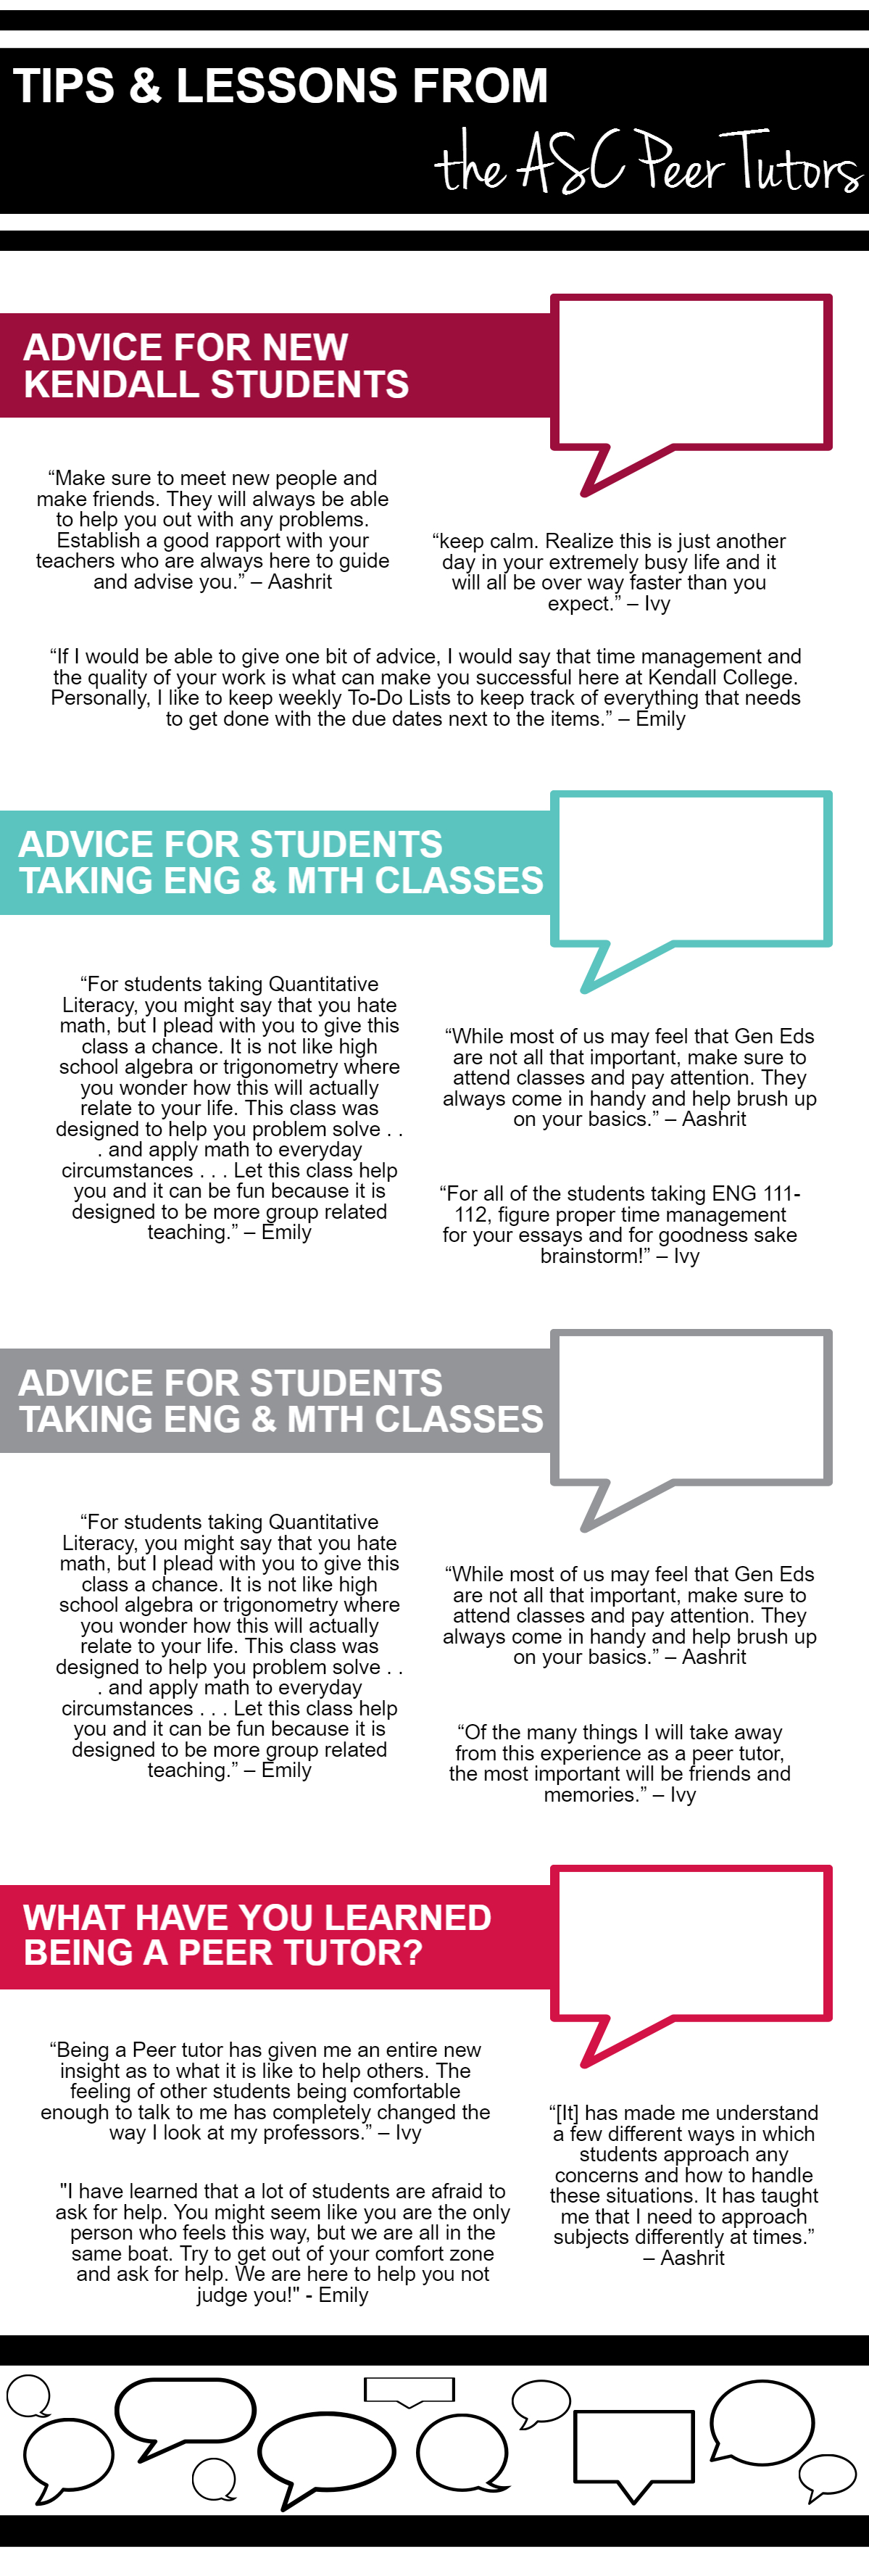 TIPS & LESSONS FROM THE ASC PEER TUTORS